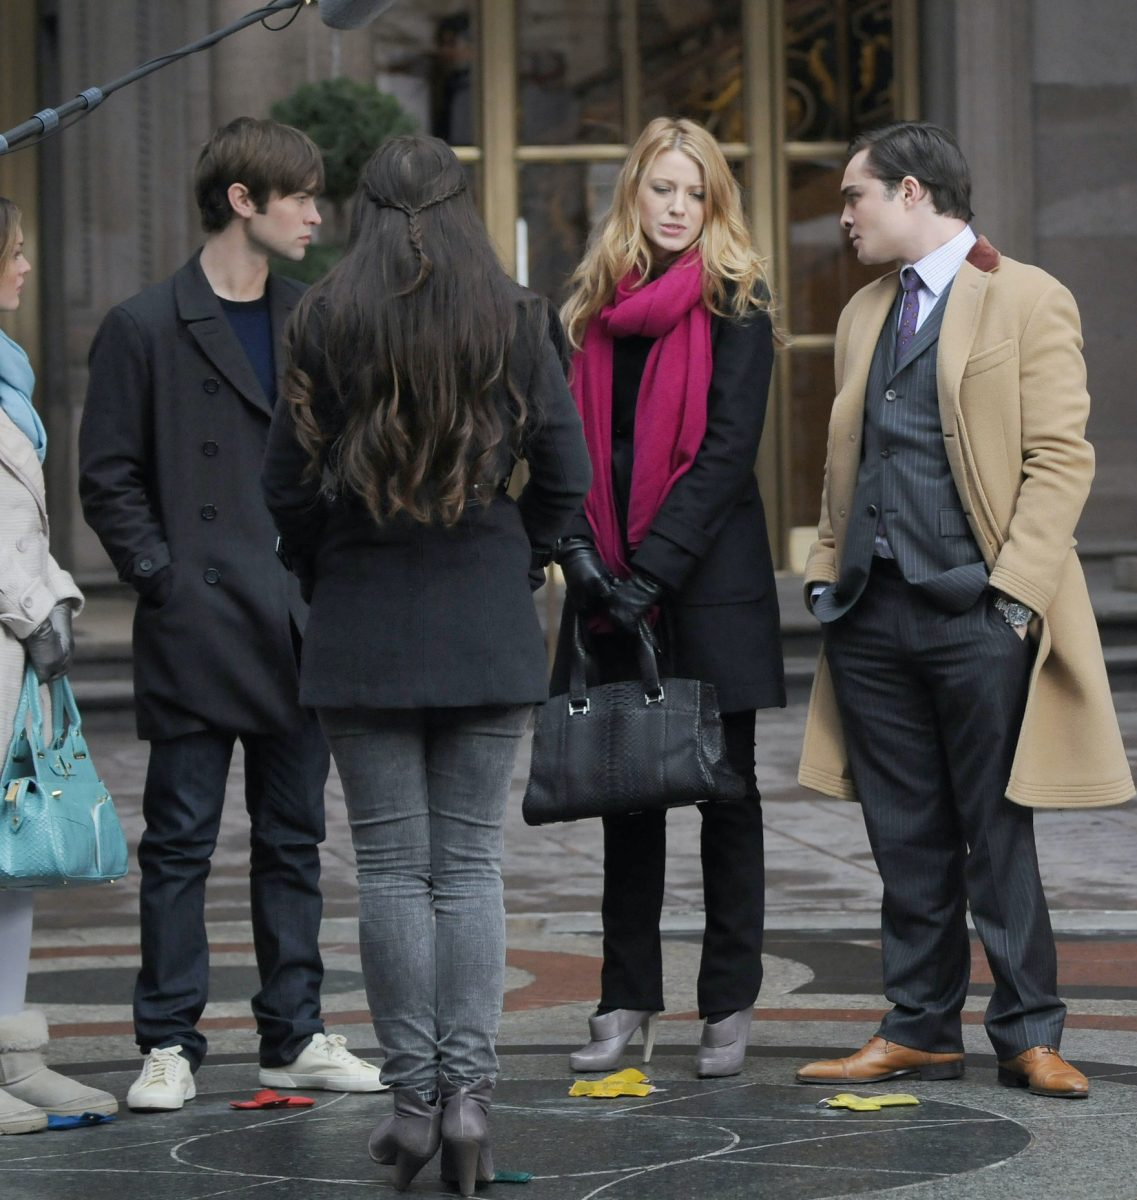 Leighton meester, Chace Crawford, Blake Lively, and Ed Westwick filming a scene from 'Gossip Girl' outside the Palace Hotel